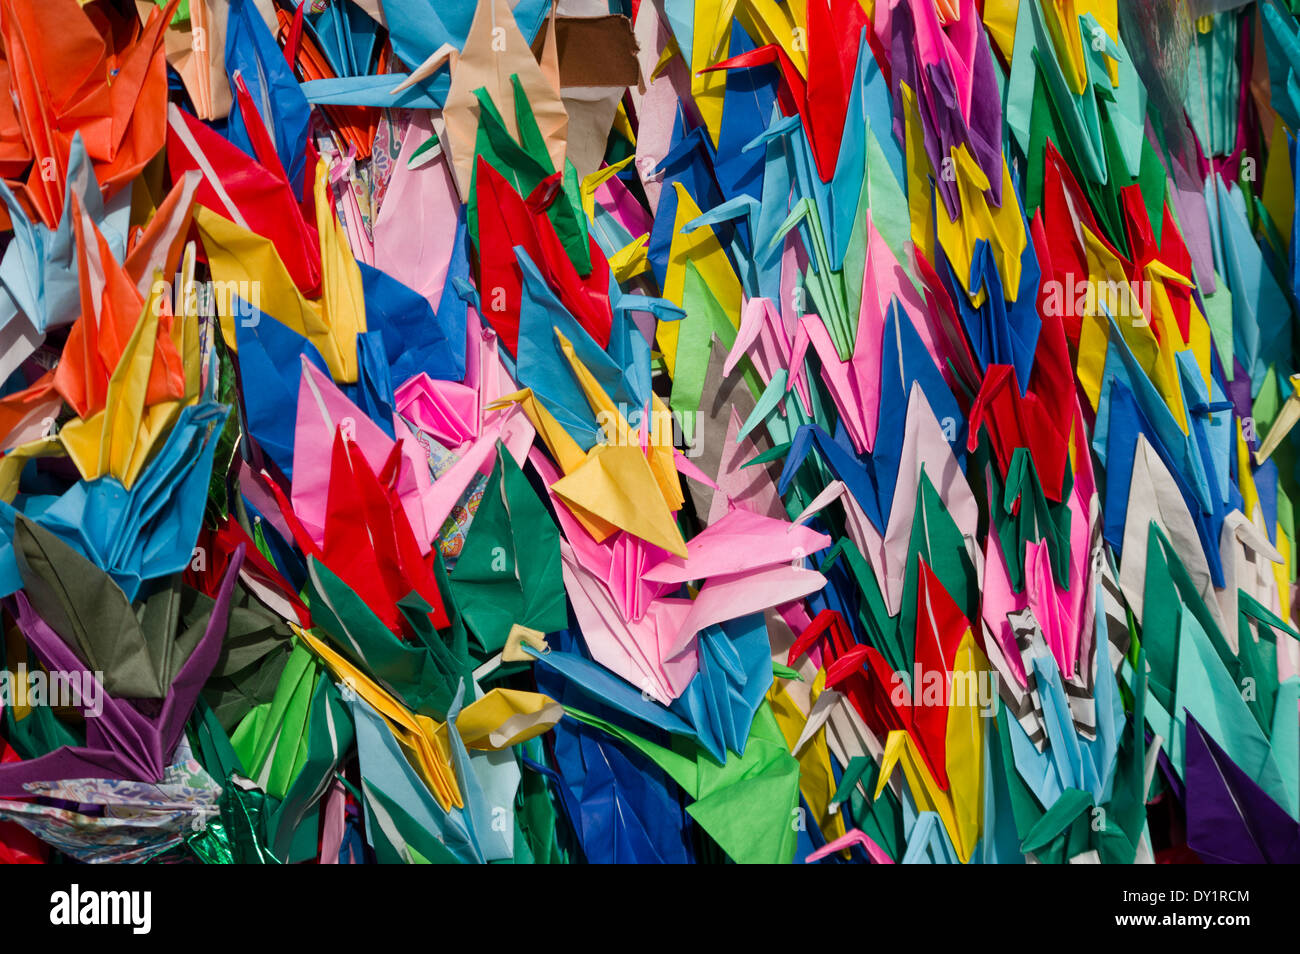 Paper Cranes Stock Photos & Paper Cranes Stock Images - Alamy - photo#24